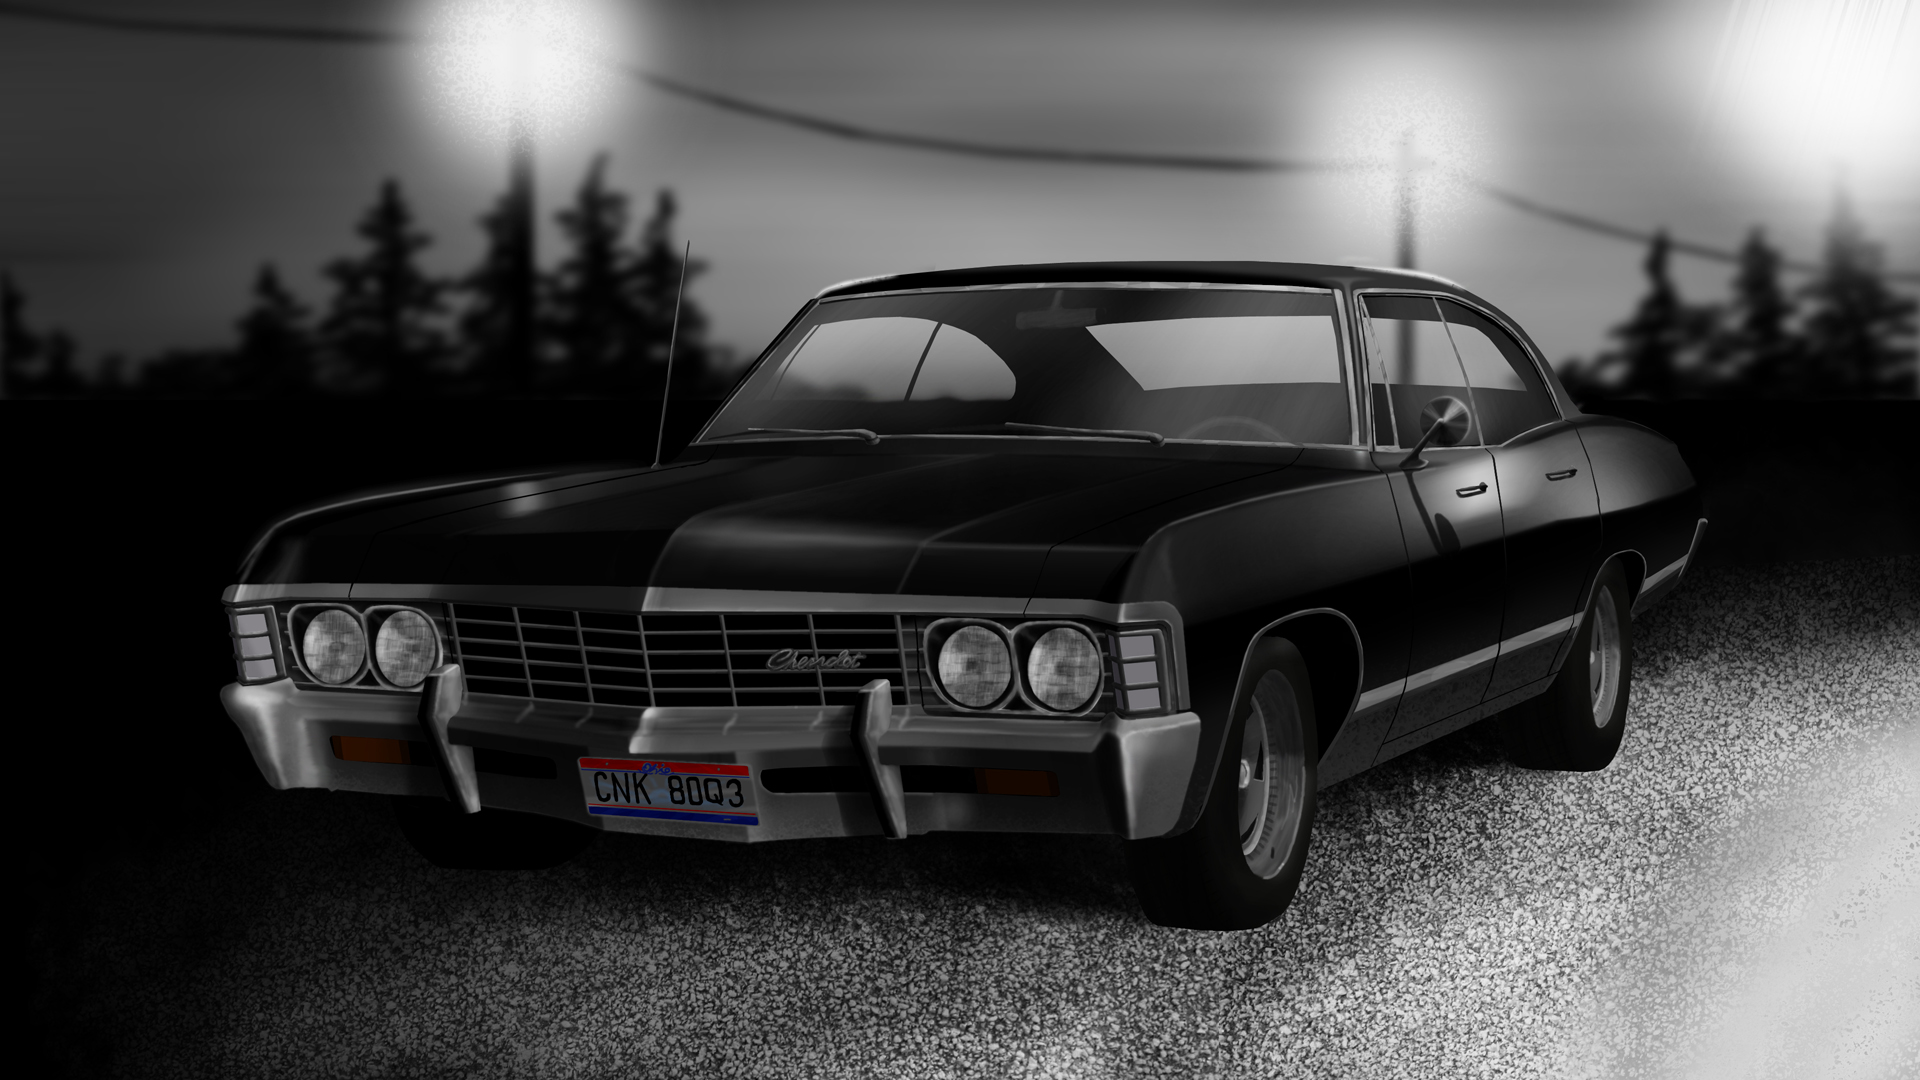 supernatural car impala wallpaper - photo #8